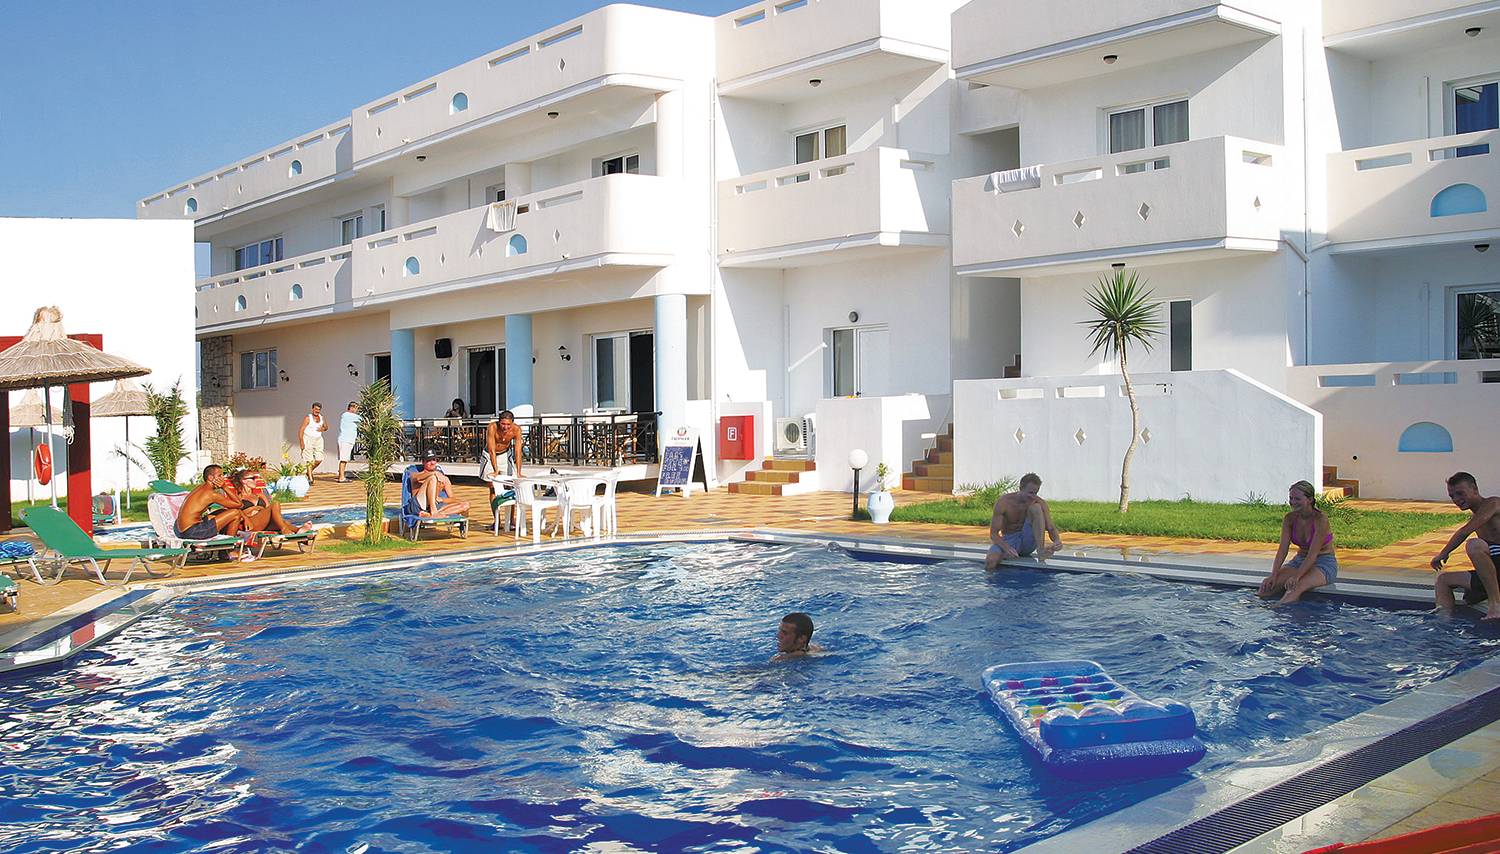 Anthoula Village hotell (Heraklion, Kreeka)